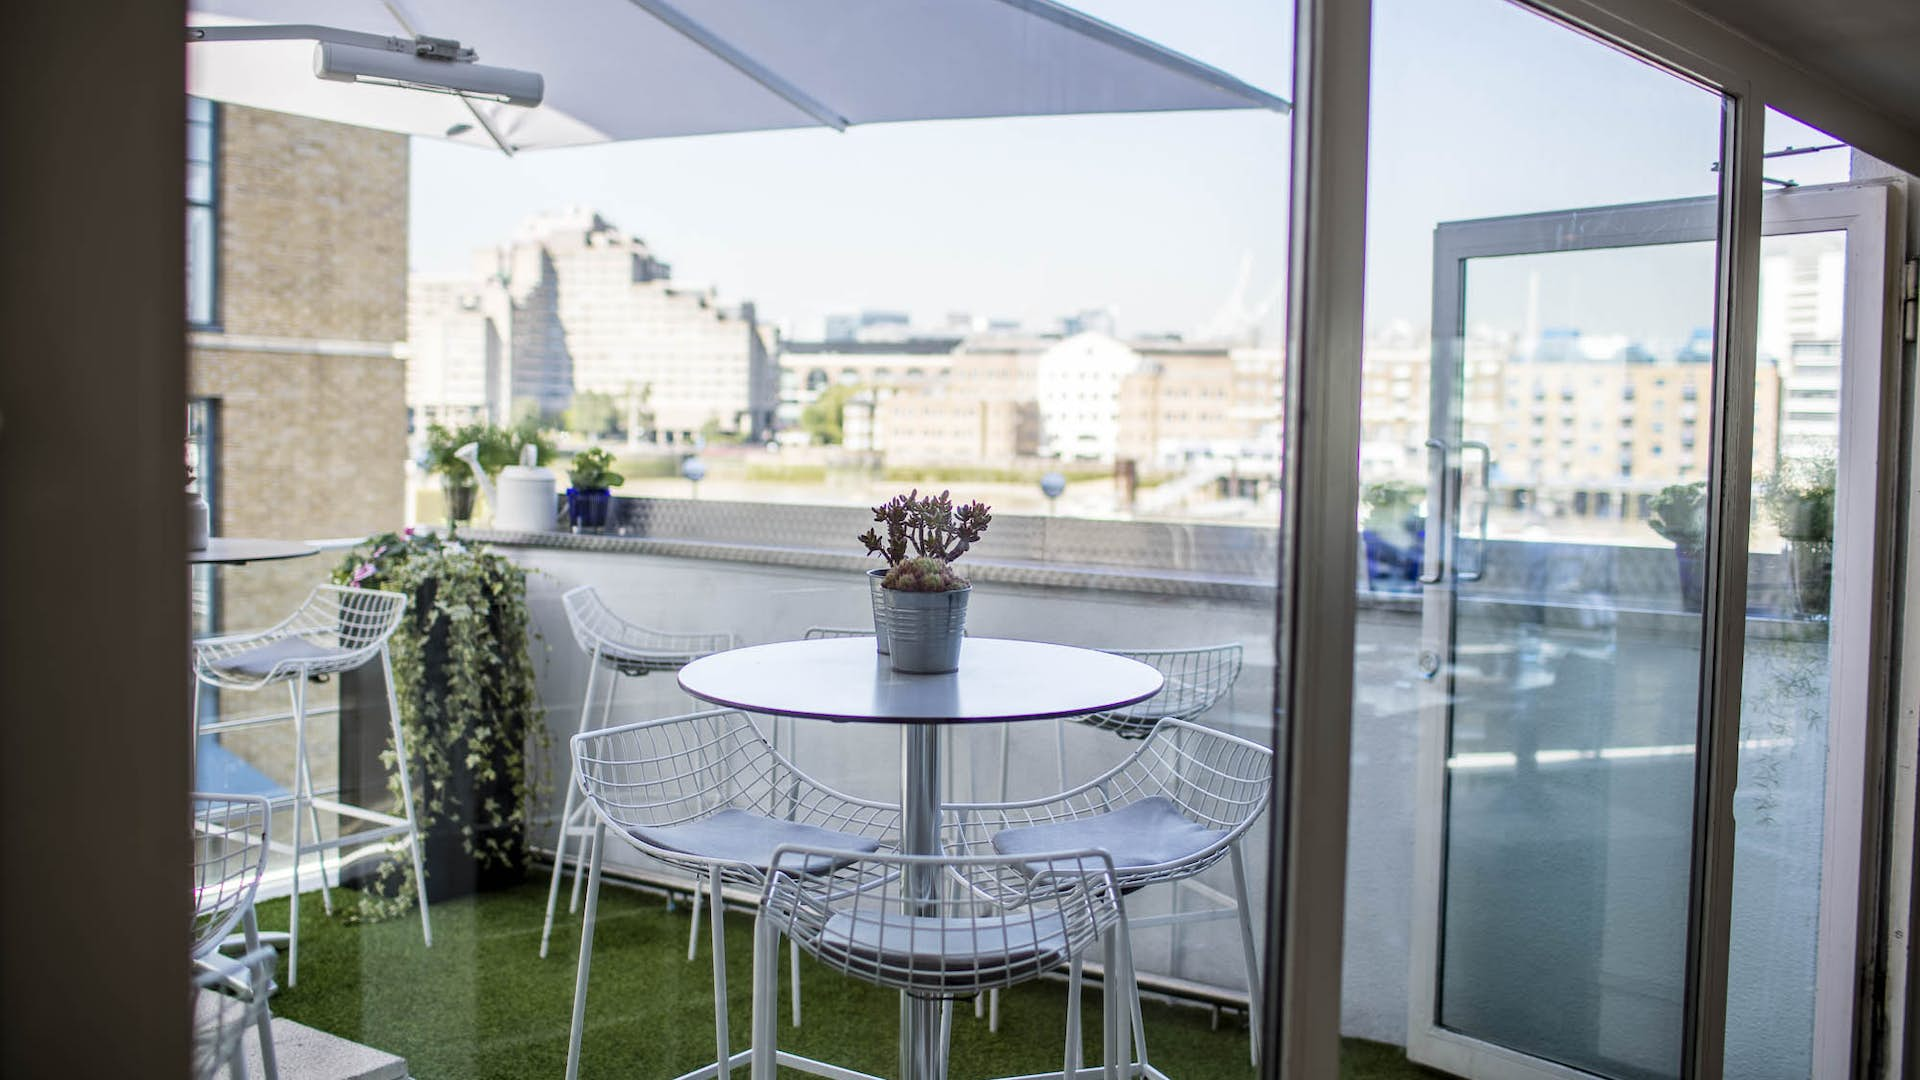 Summer terrace events hire blueprint cafe hire space venue hire roof terrace at blueprint cafe malvernweather Image collections